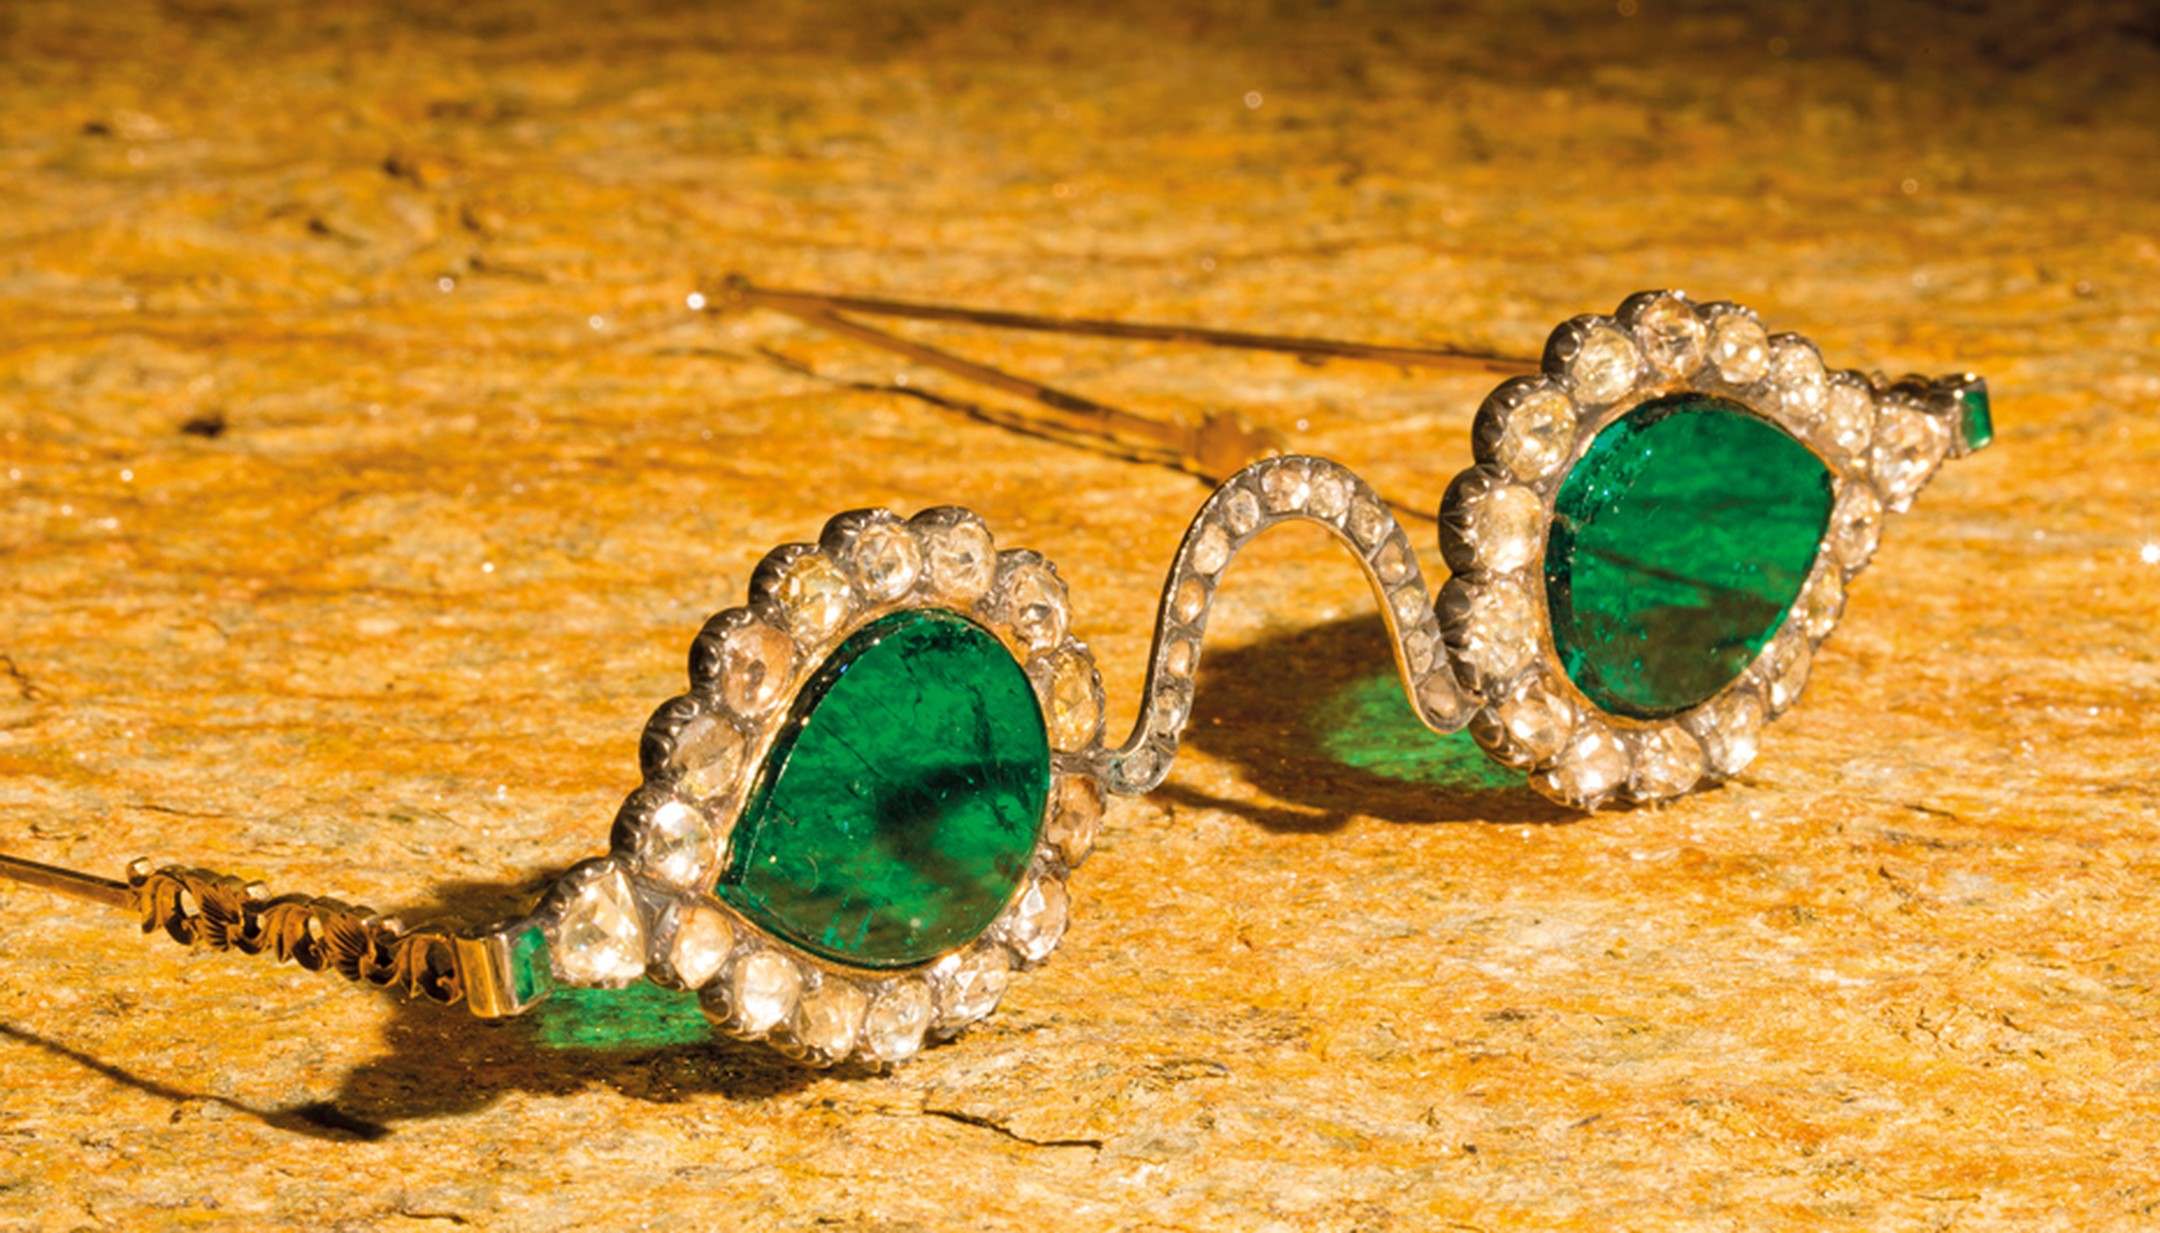 Late 19th century spectacles, known as Astaneh-ye-ferdaws (Gate of Paradise) featuring gems of Indian Mughal dominions, gold, silver, diamonds and emeralds.